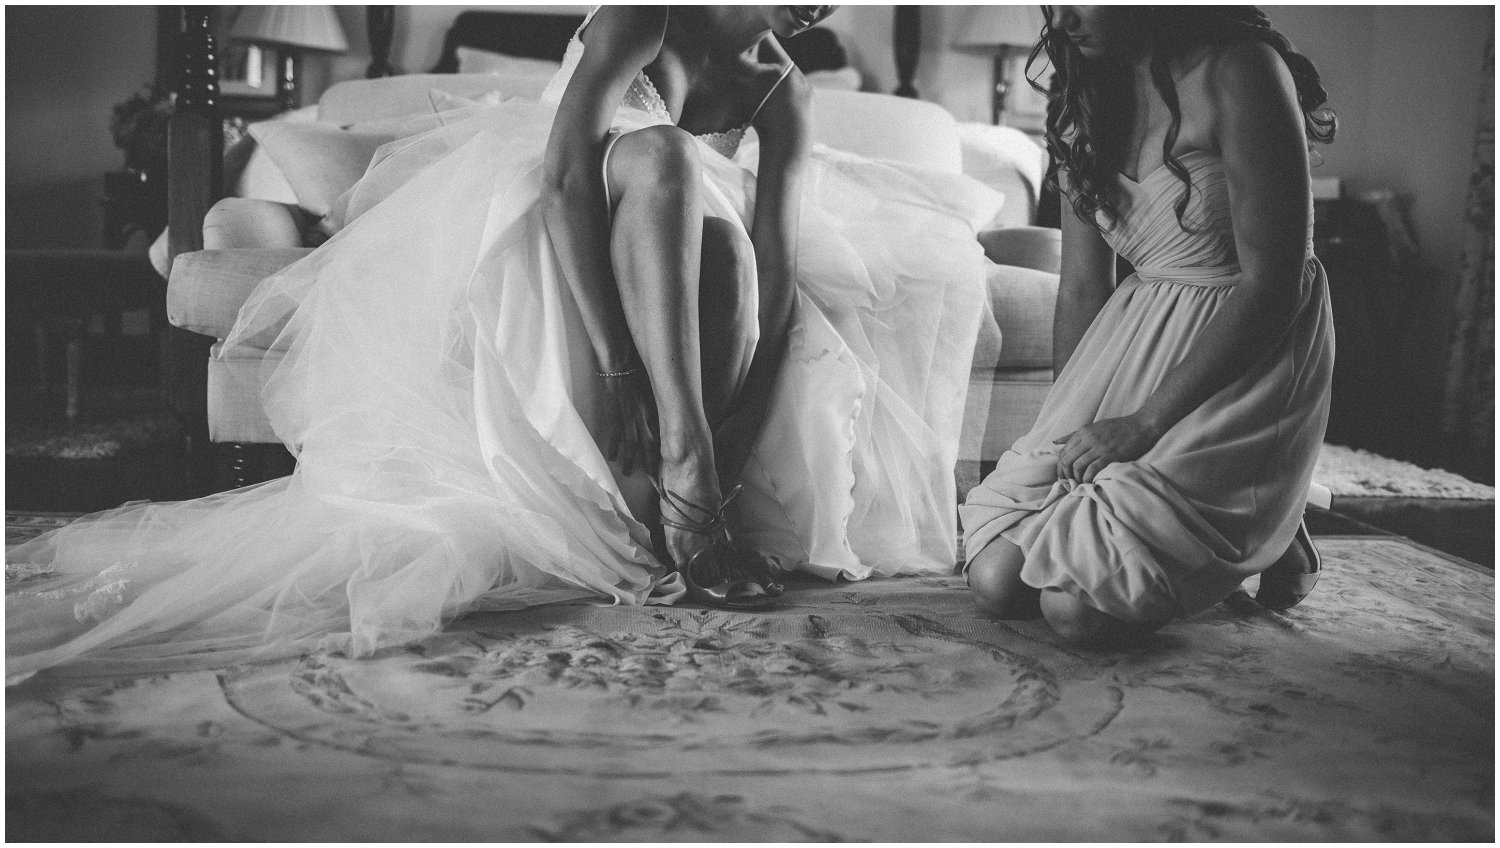 Top Artistic Documentary Wedding Photographer Cape Town South Africa Rue Kruger_0066.jpg